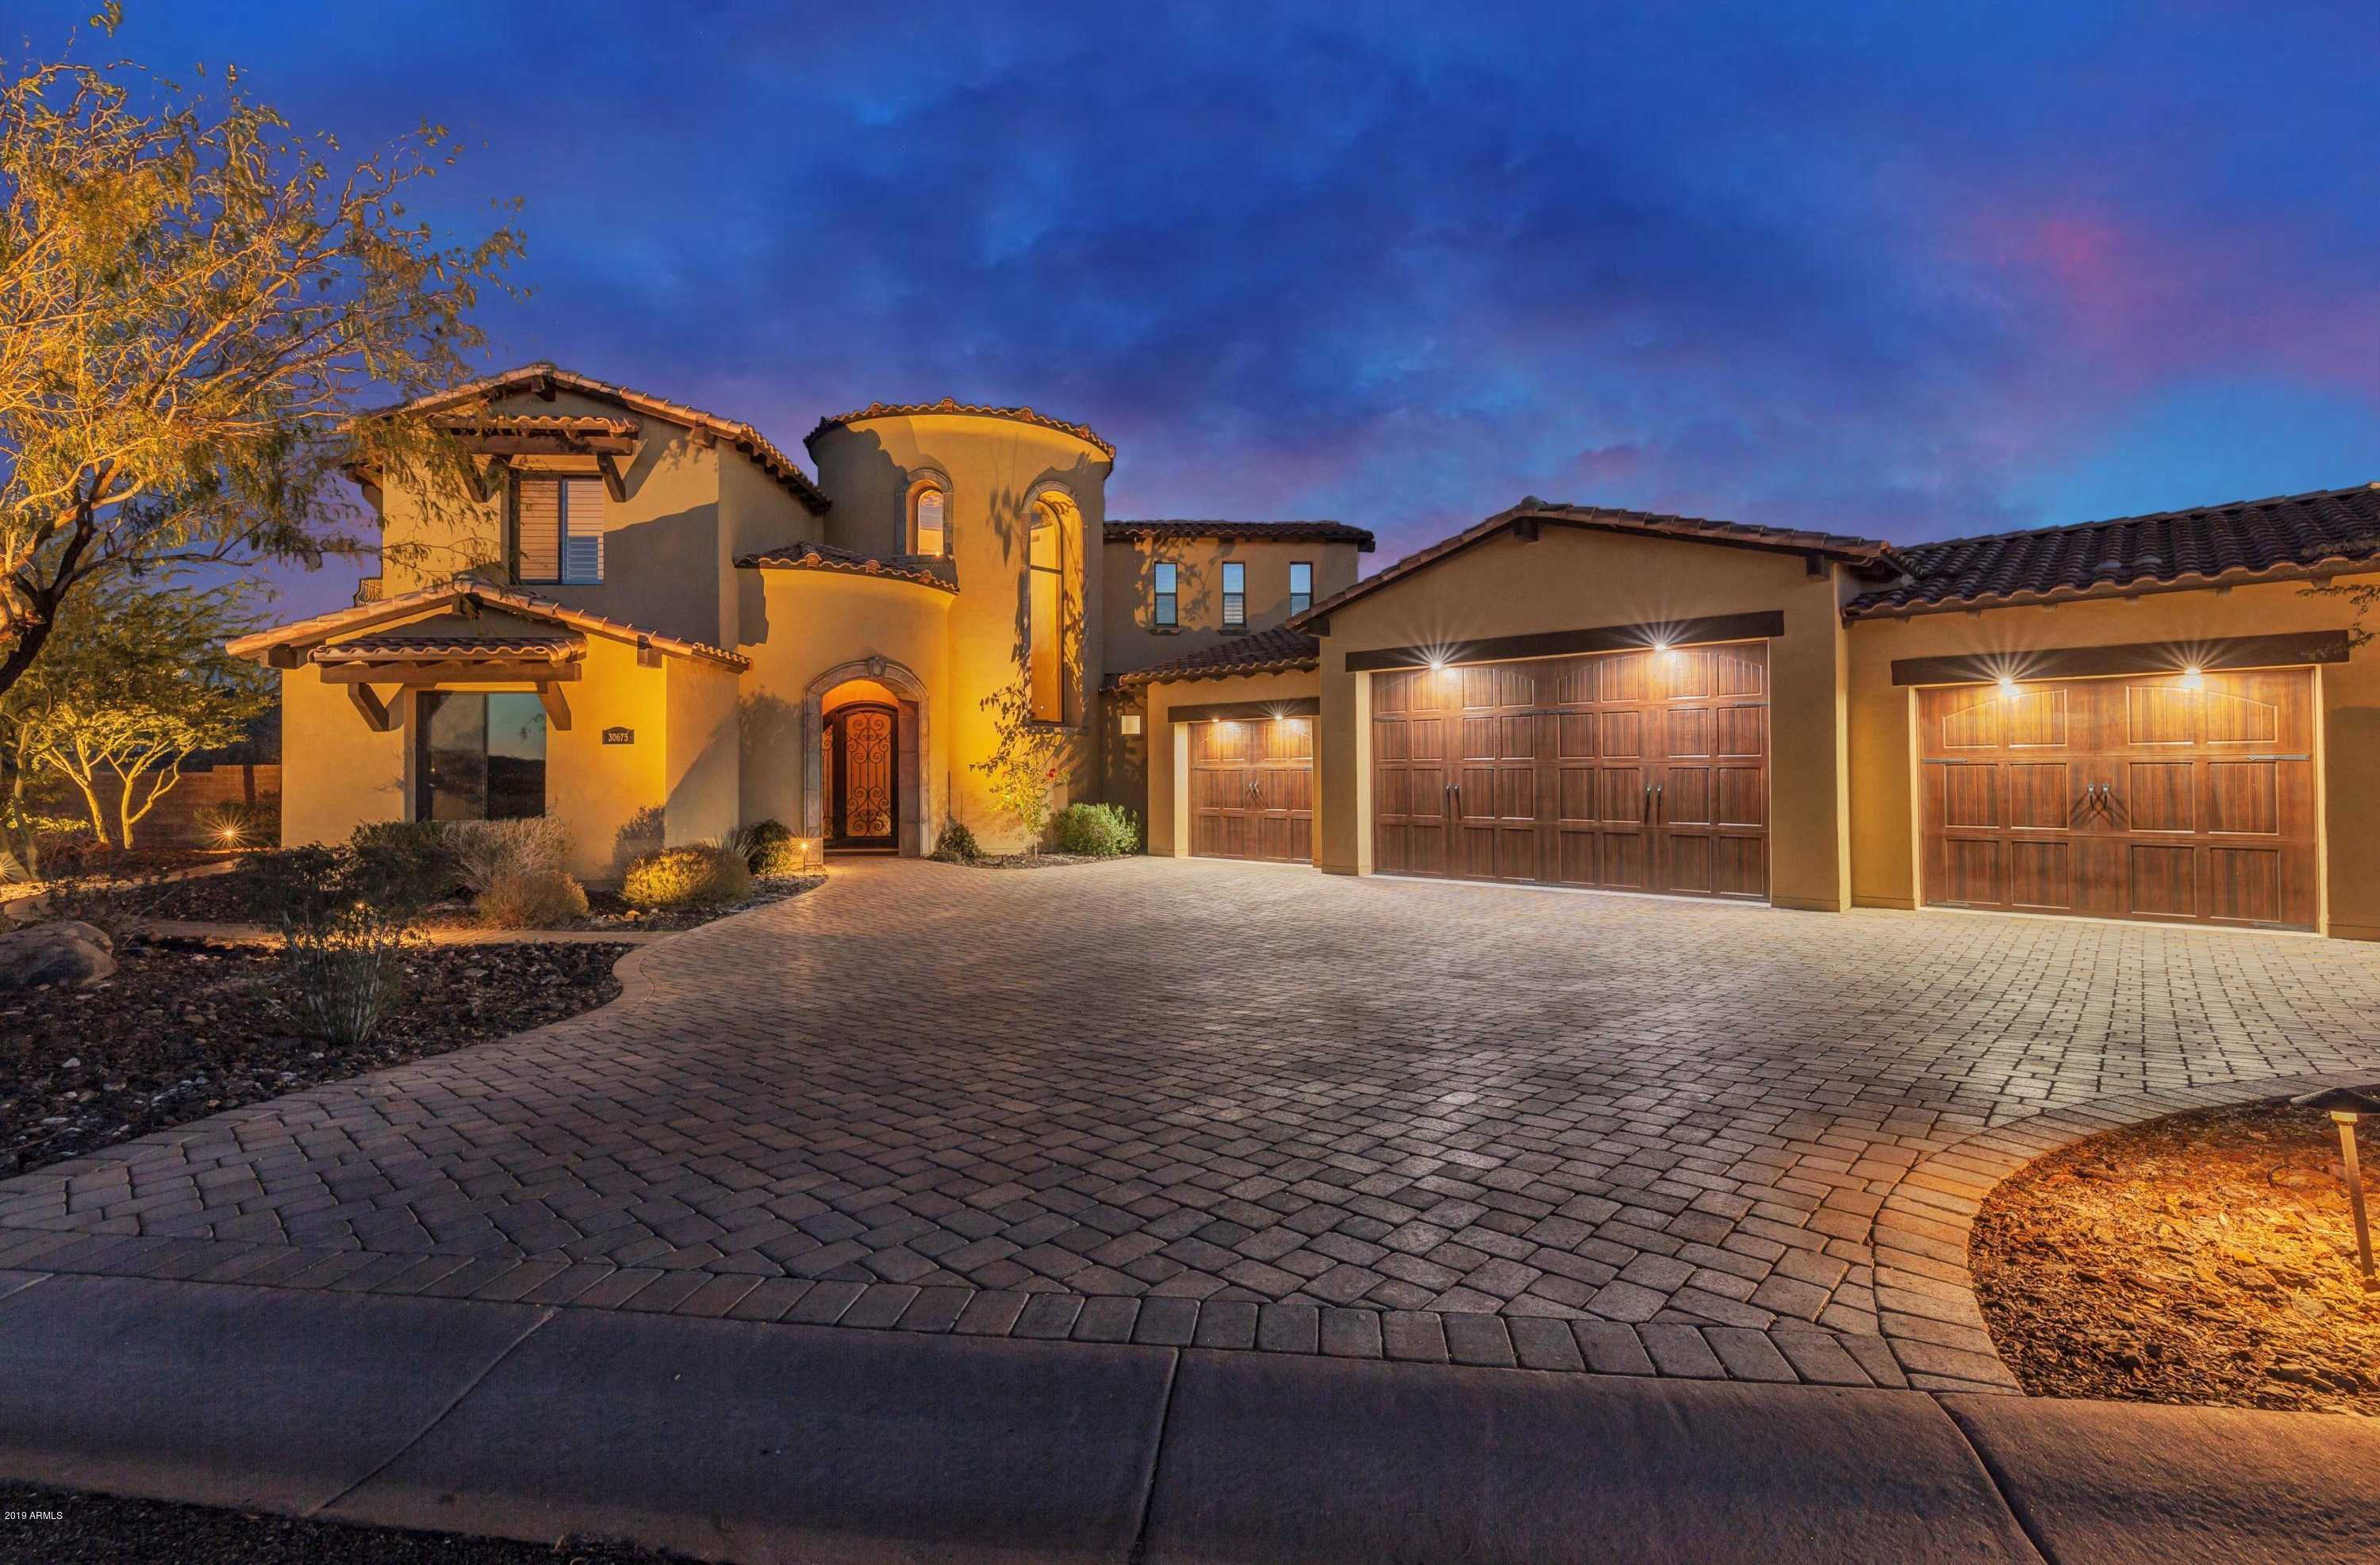 $1,599,000 - 5Br/6Ba - Home for Sale in Blackstone At Vistancia B2, Peoria